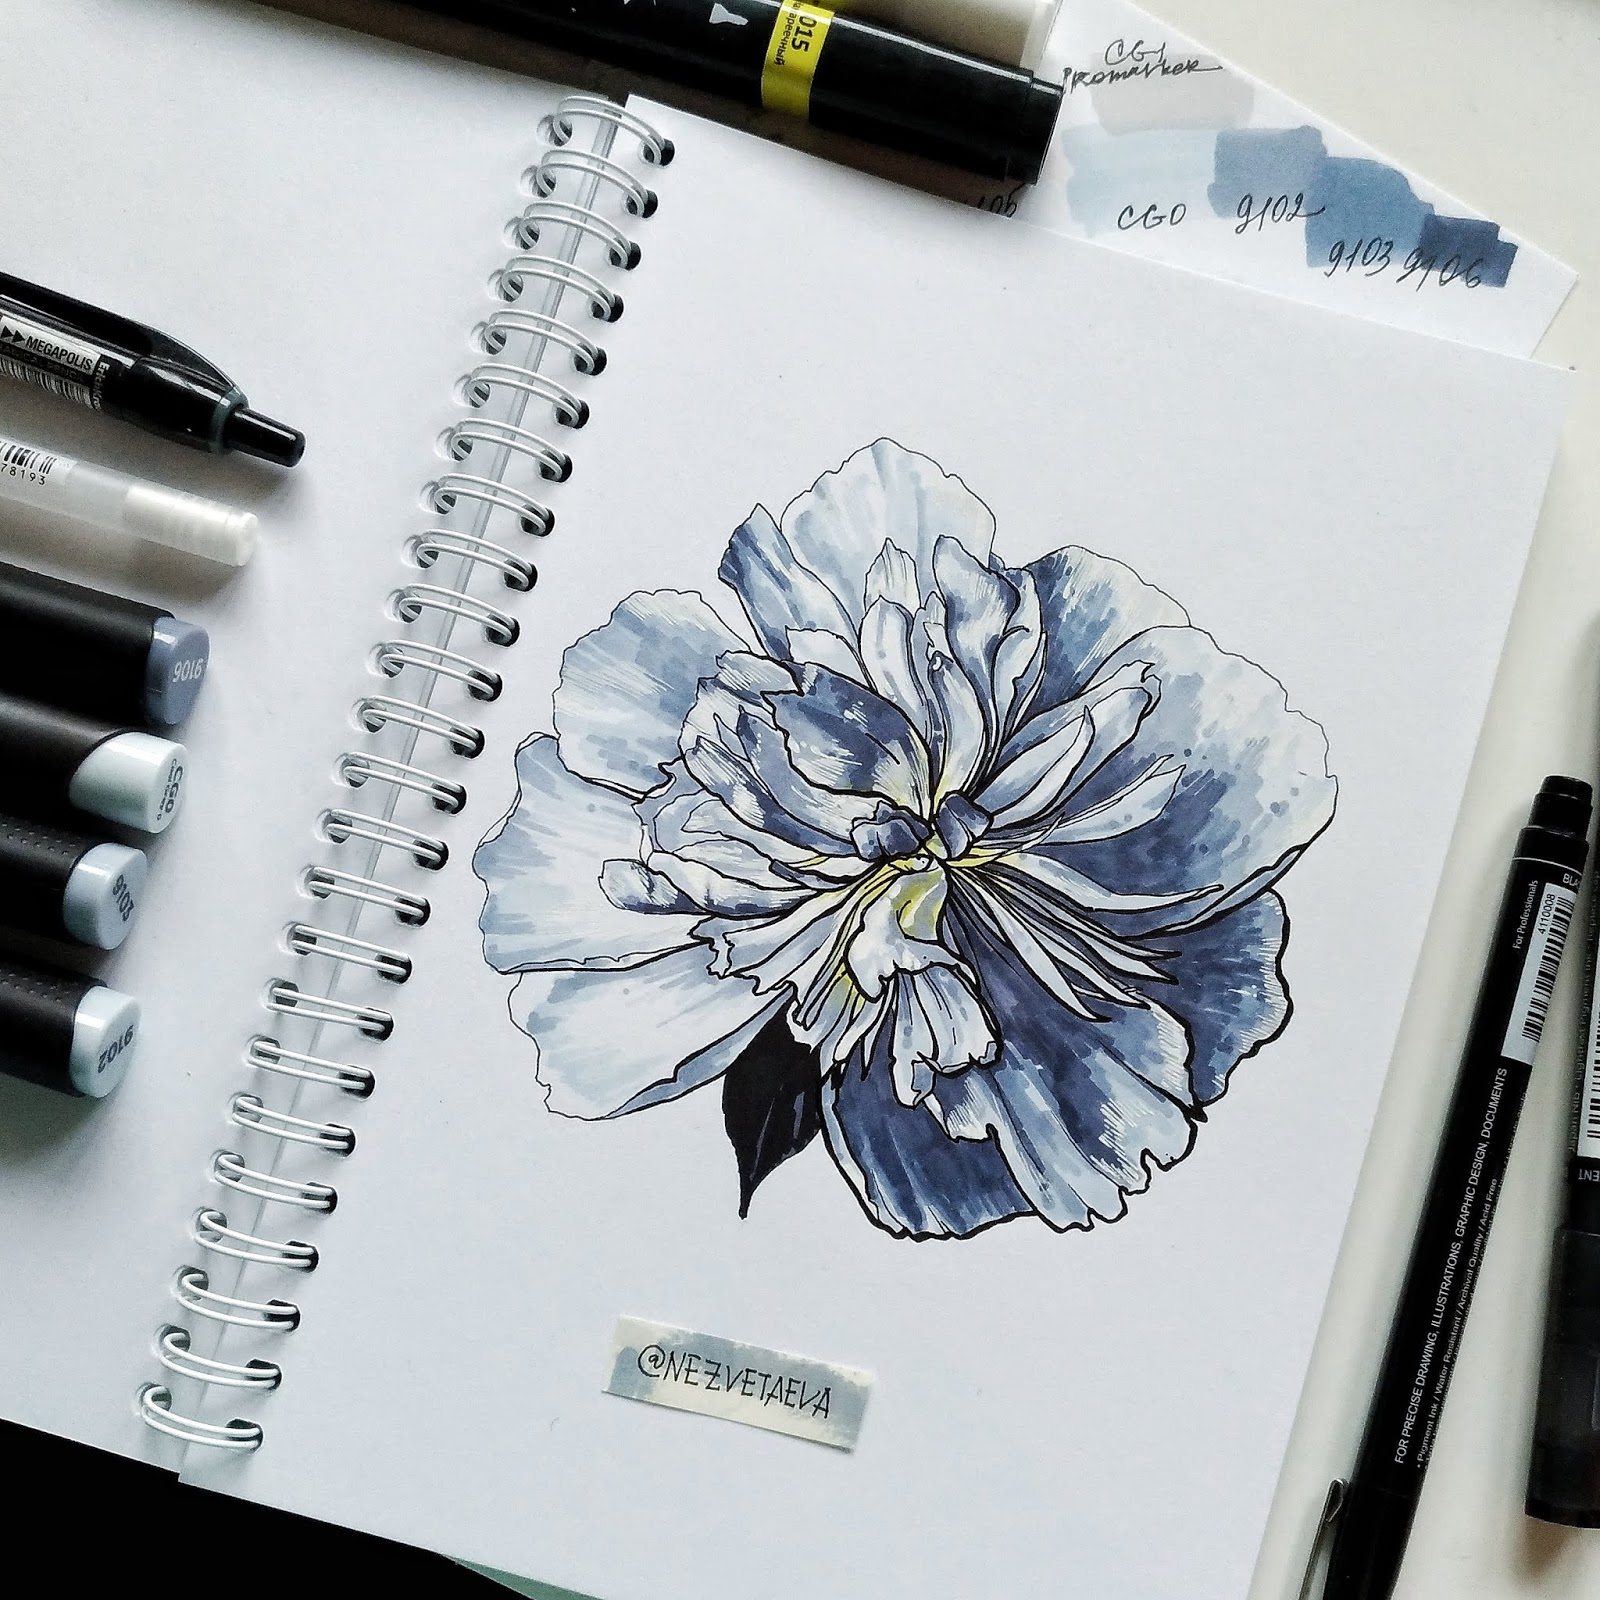 Sketchbook tour. My first flowers, Sonia Nezvetaeva, artist diary